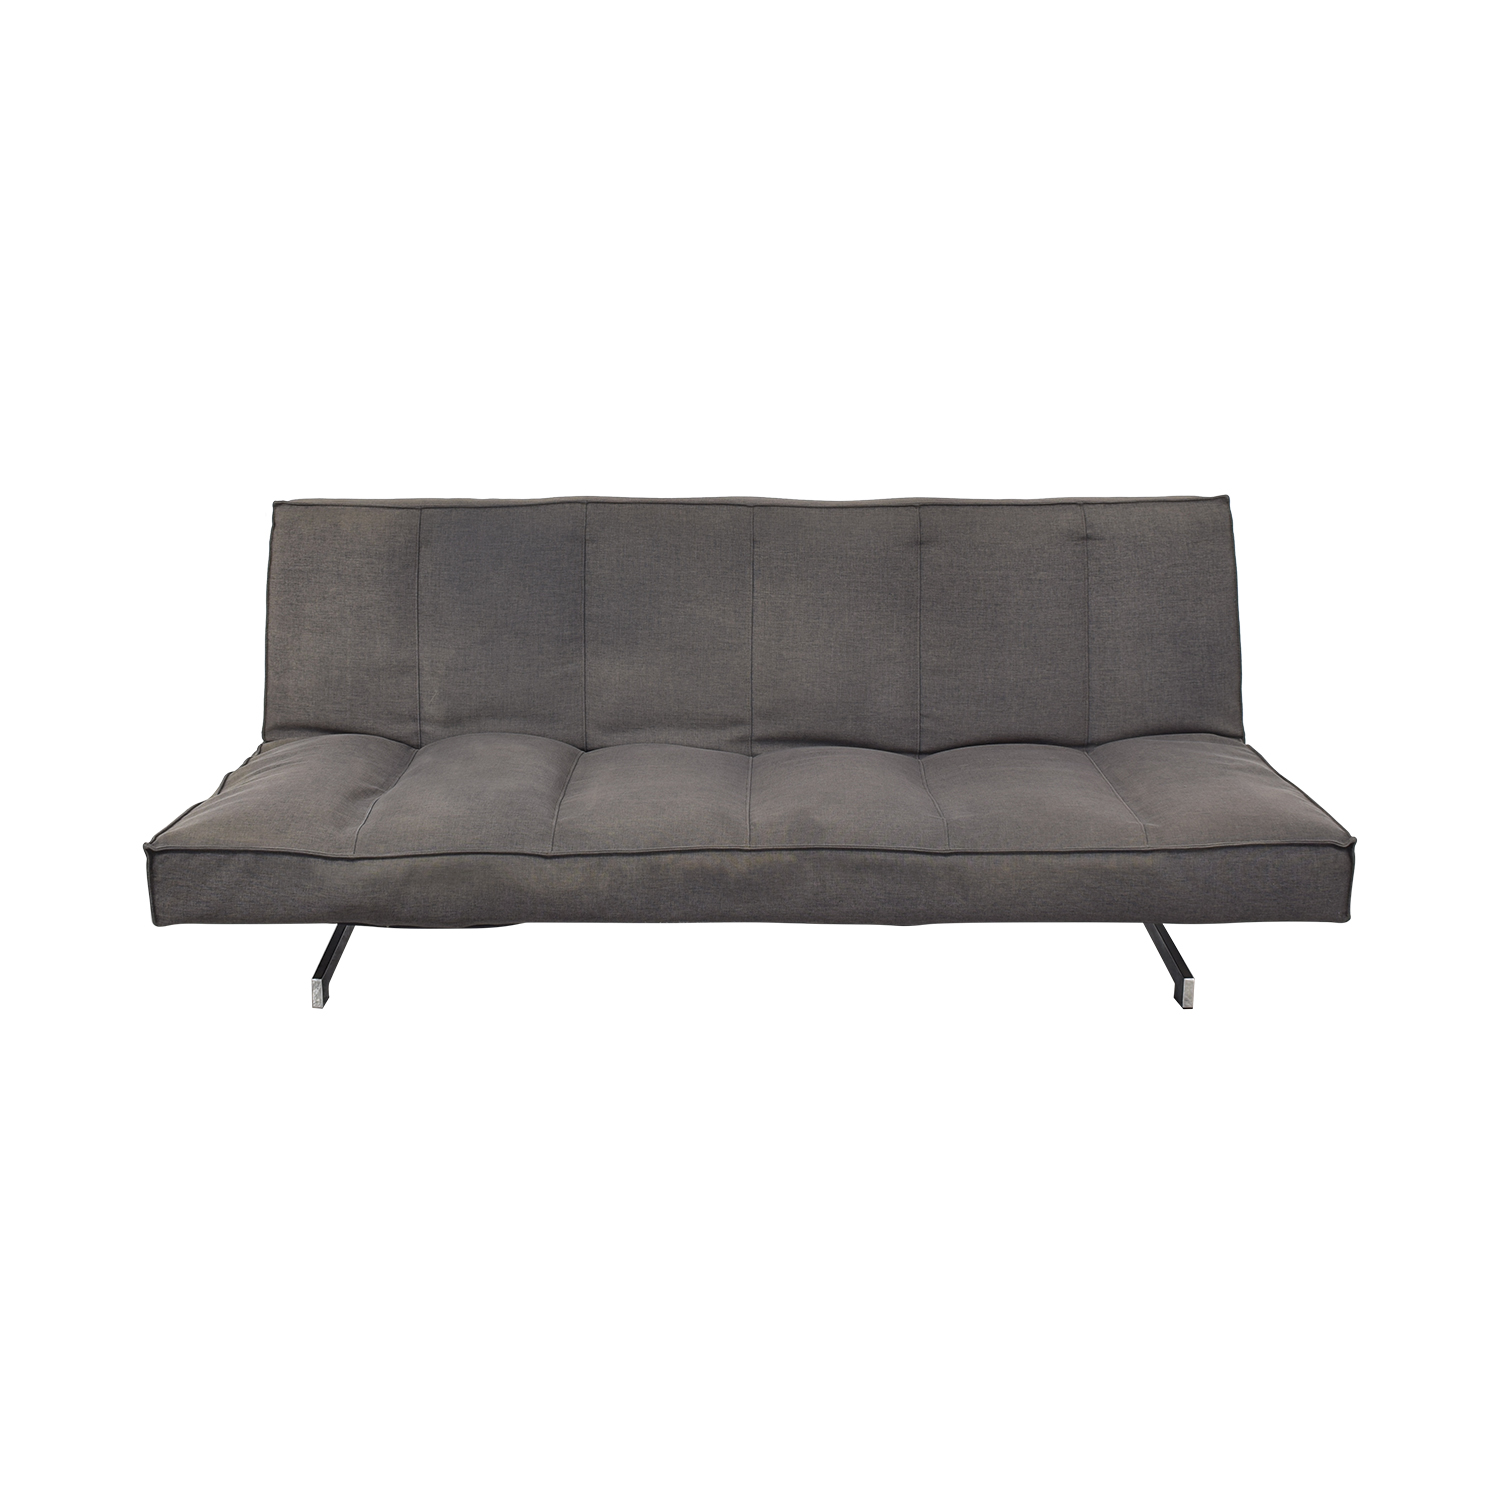 CB2 CB2 Flex Sleeper Sofa ma